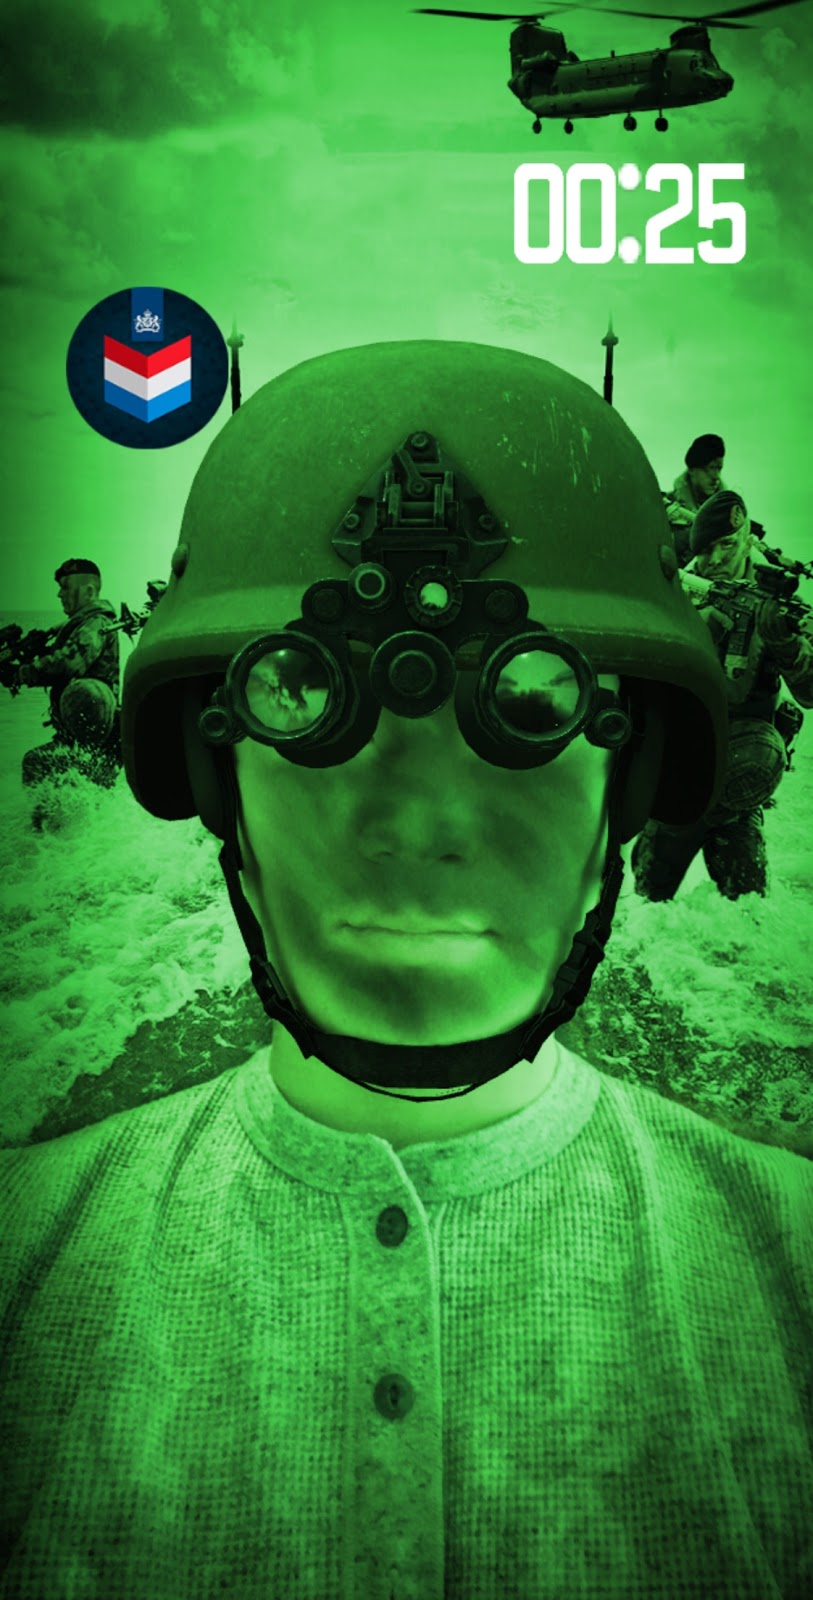 The Dutch Ministry of Defense drives awareness and recruitment with Snapchat